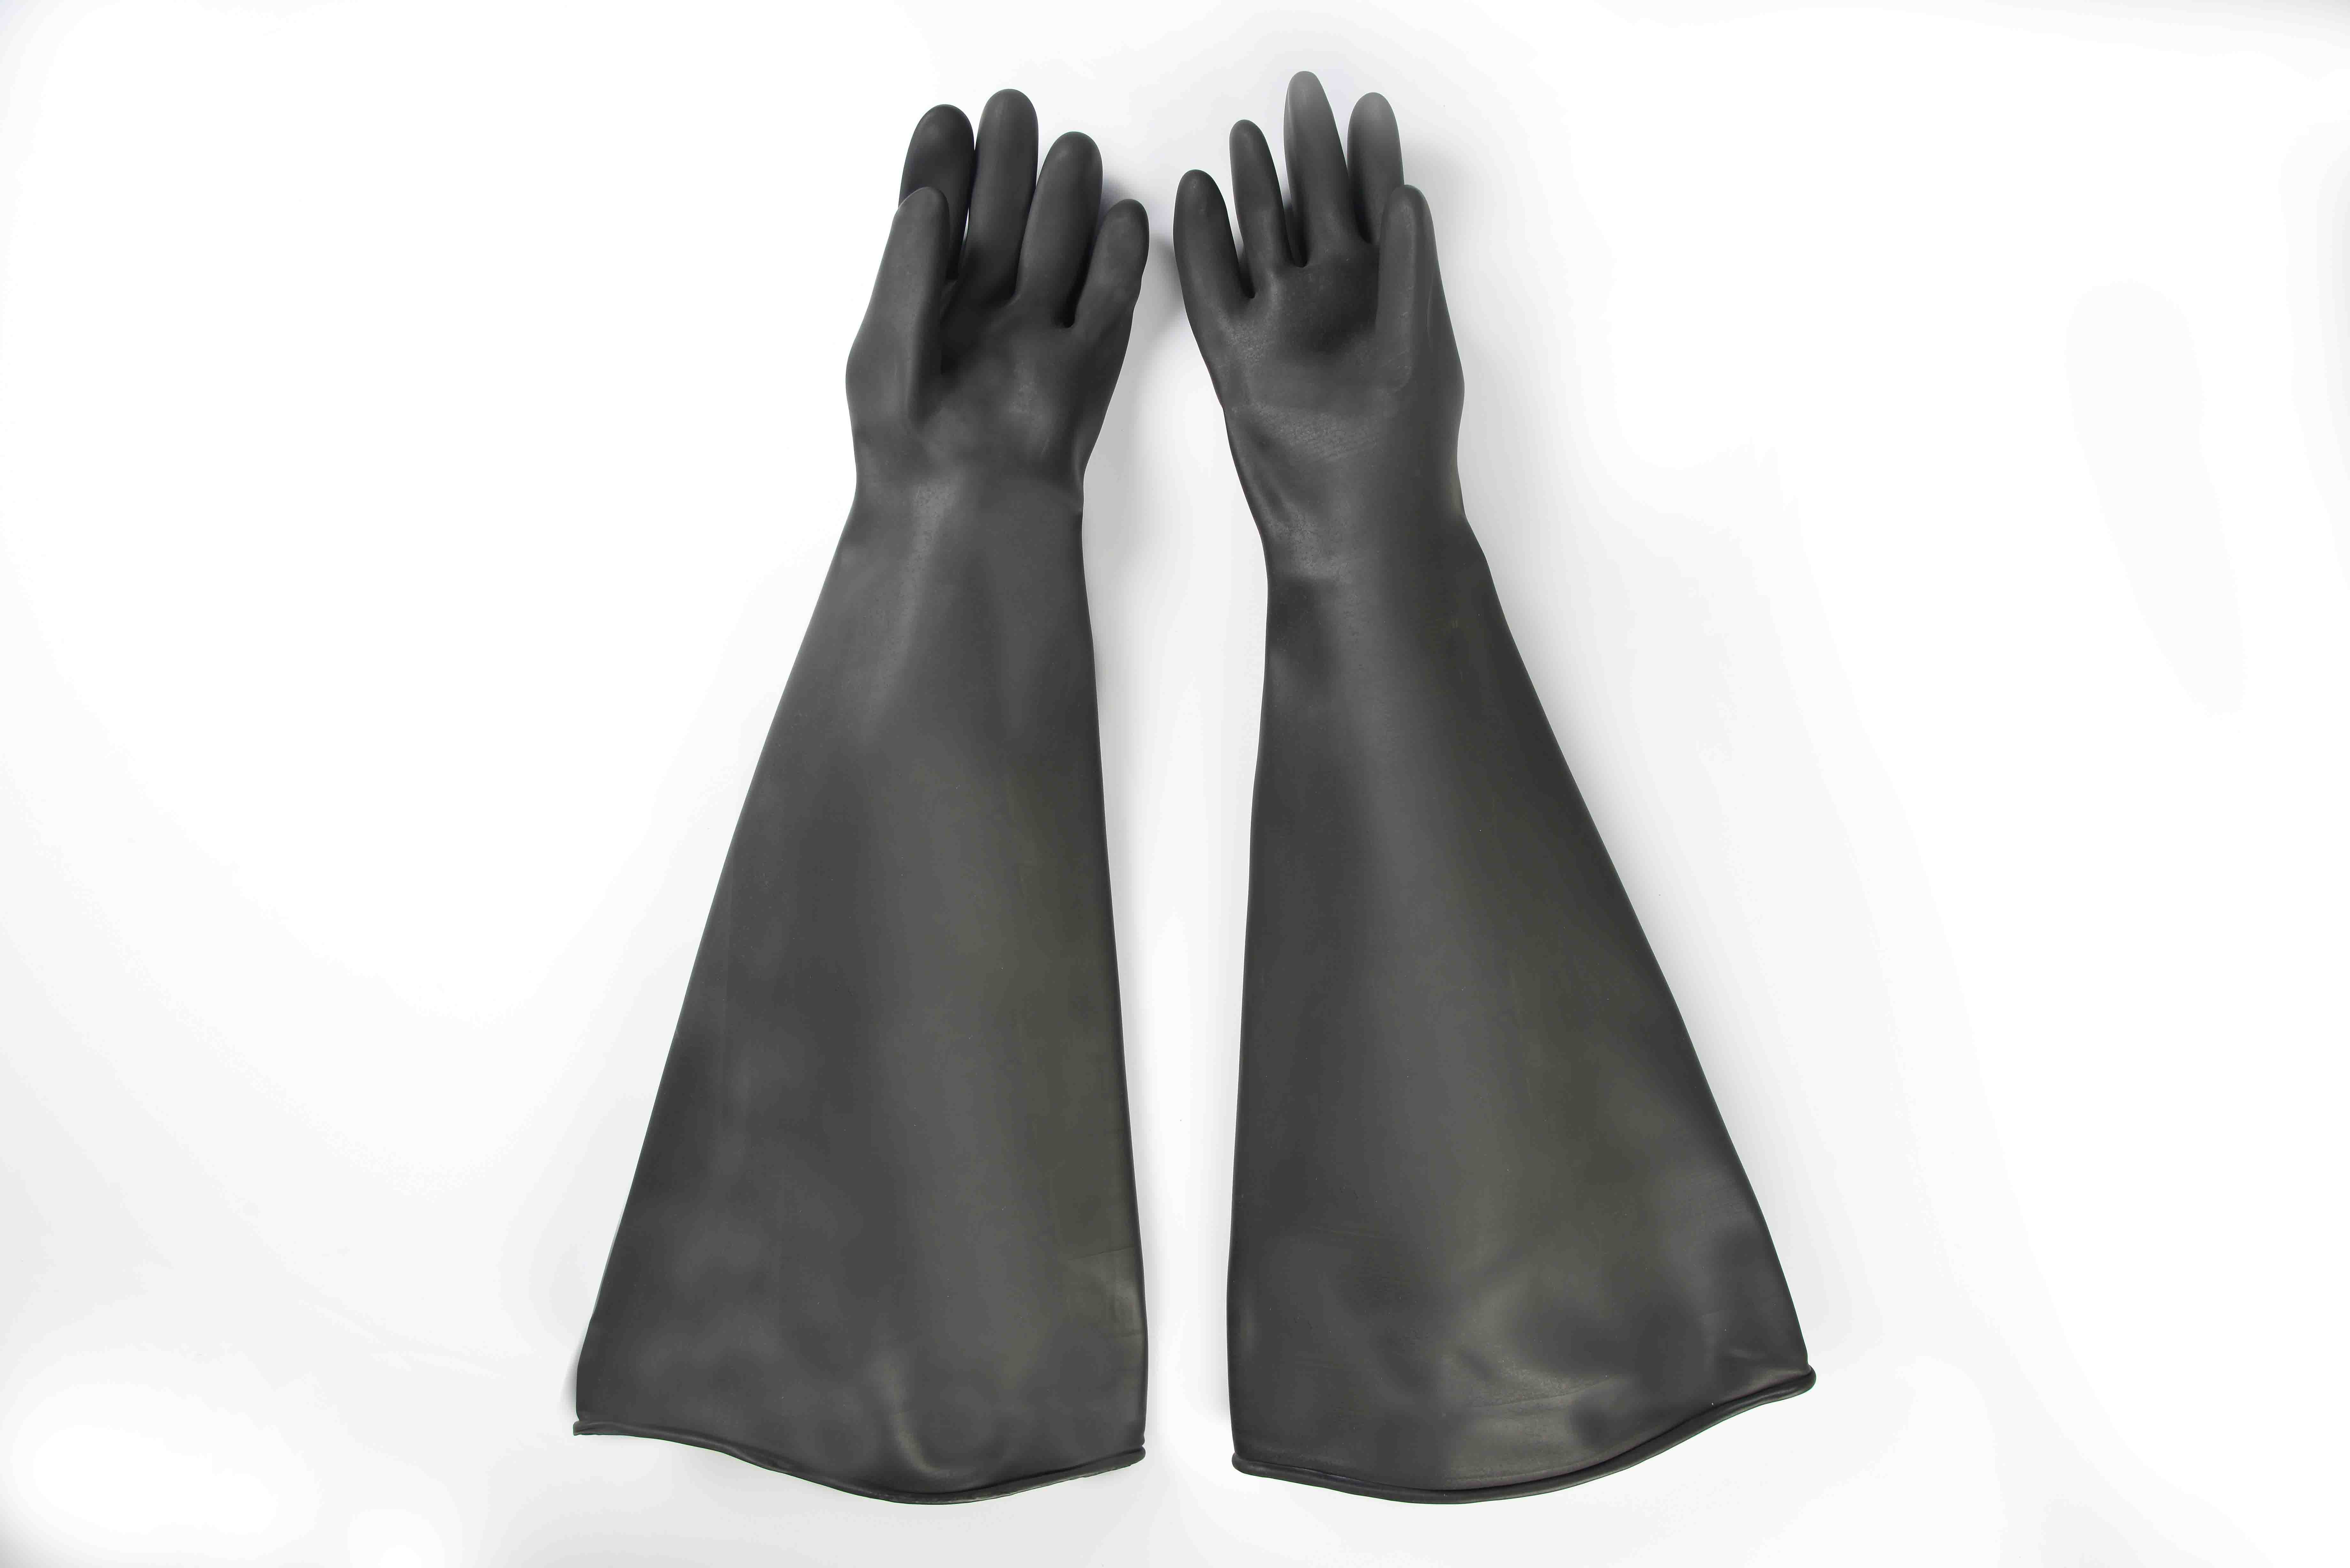 12 Years Factory wholesale 26″ Industrial rubber glove-smooth finish Pakistan Factory